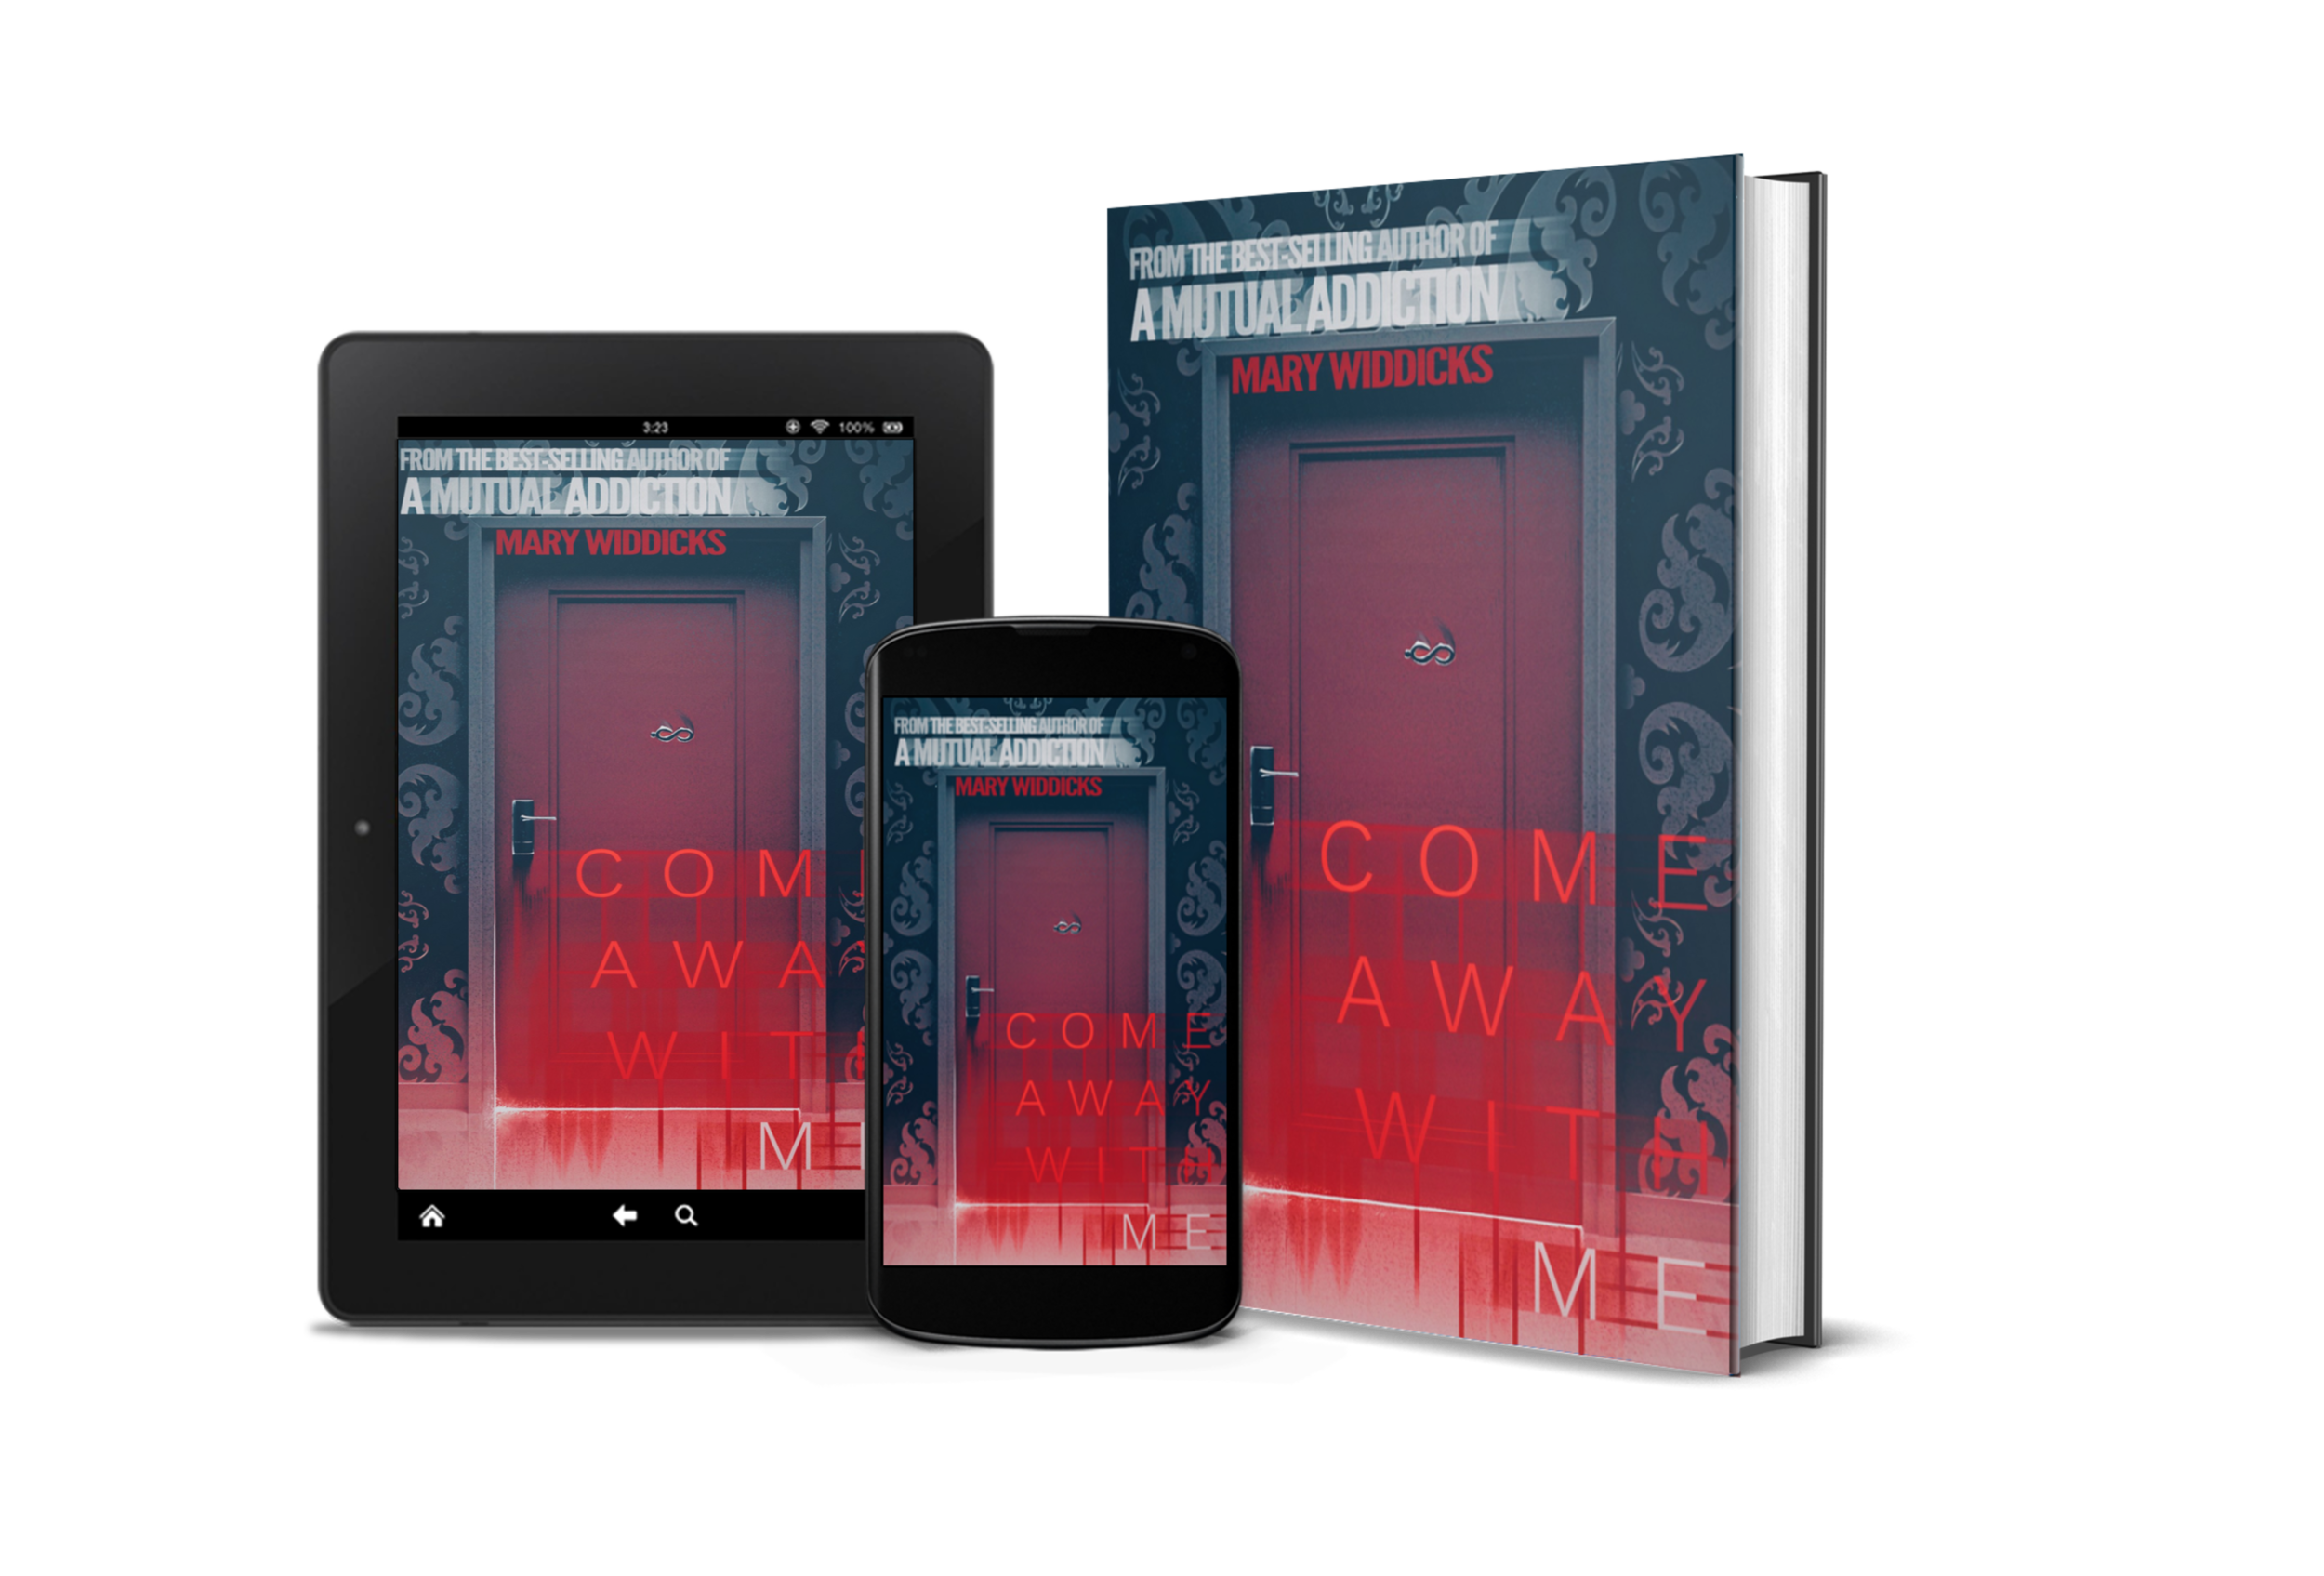 Come Away With Me    Available on Amazon and Kindle Unlimited!   In the vein of The Twilight Zone and Black Mirror, Come Away With Me is an eerie tale of eternal damnation, the absence of free will, and the all-consuming power of Norah Jones.     The room is dark.    Not the kind of dark which is simply an absence of light, but the kind of dark which has a physical presence. It's more alive than I am, wrapping its cold arms around me and holding me captive. Formless and still, not even my breath moves in the room. The only visible light seeps under a door at the far end of the room.    Silent at first, my feet touch the ground for the first time as I approach the sliver of gold. Rough soles scrape against the hard surface and the impact of each step travels up my body, waking it as if from a deep sleep. Only once I reach the door does my hand materialize in the dark. Shimmery and ethereal like a mirage. With a push the door swings wide and the fierce light blinds me again…